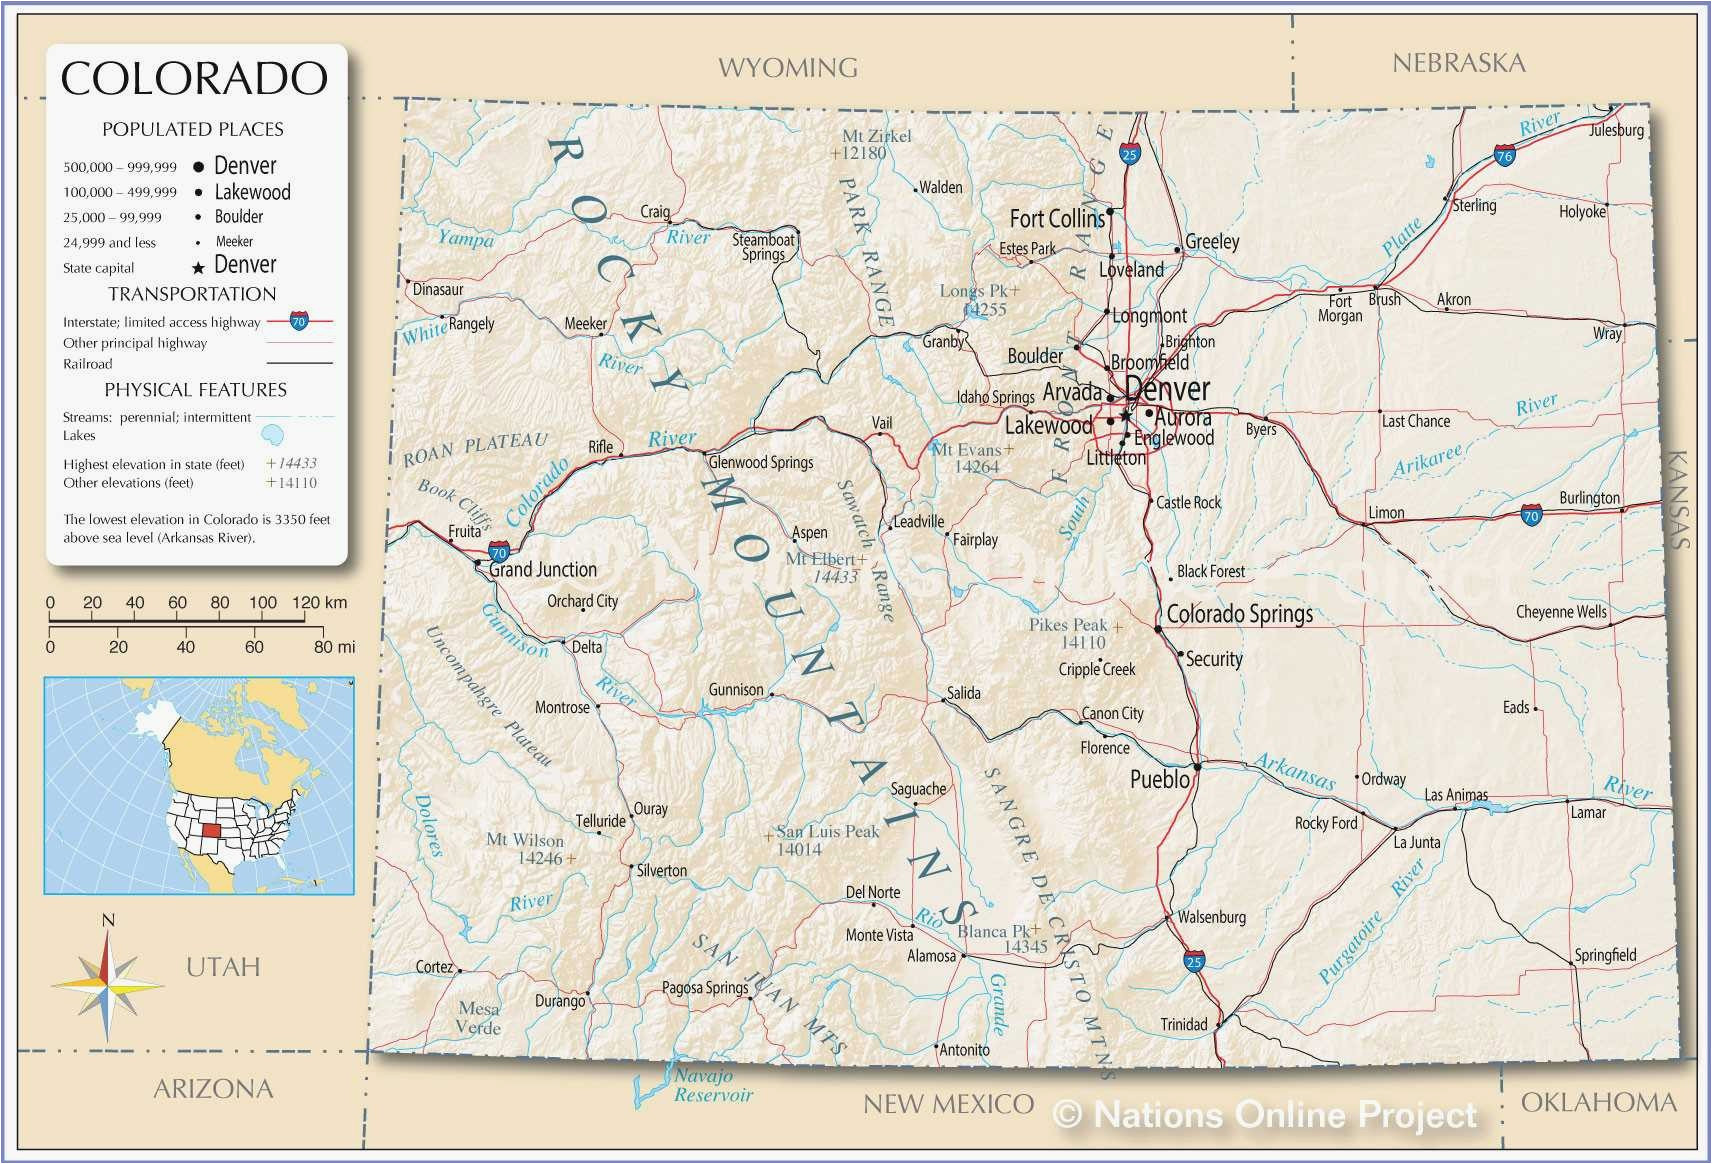 Canon Colorado Map | secretmuseum on ft collins zip code map, boulder city map, grand junction mi map, grand junction to denver map, grand-junction winery map, texas canyon arizona map, salida co map, canon city co map, grand junction and rapid city map, cheyenne city map,